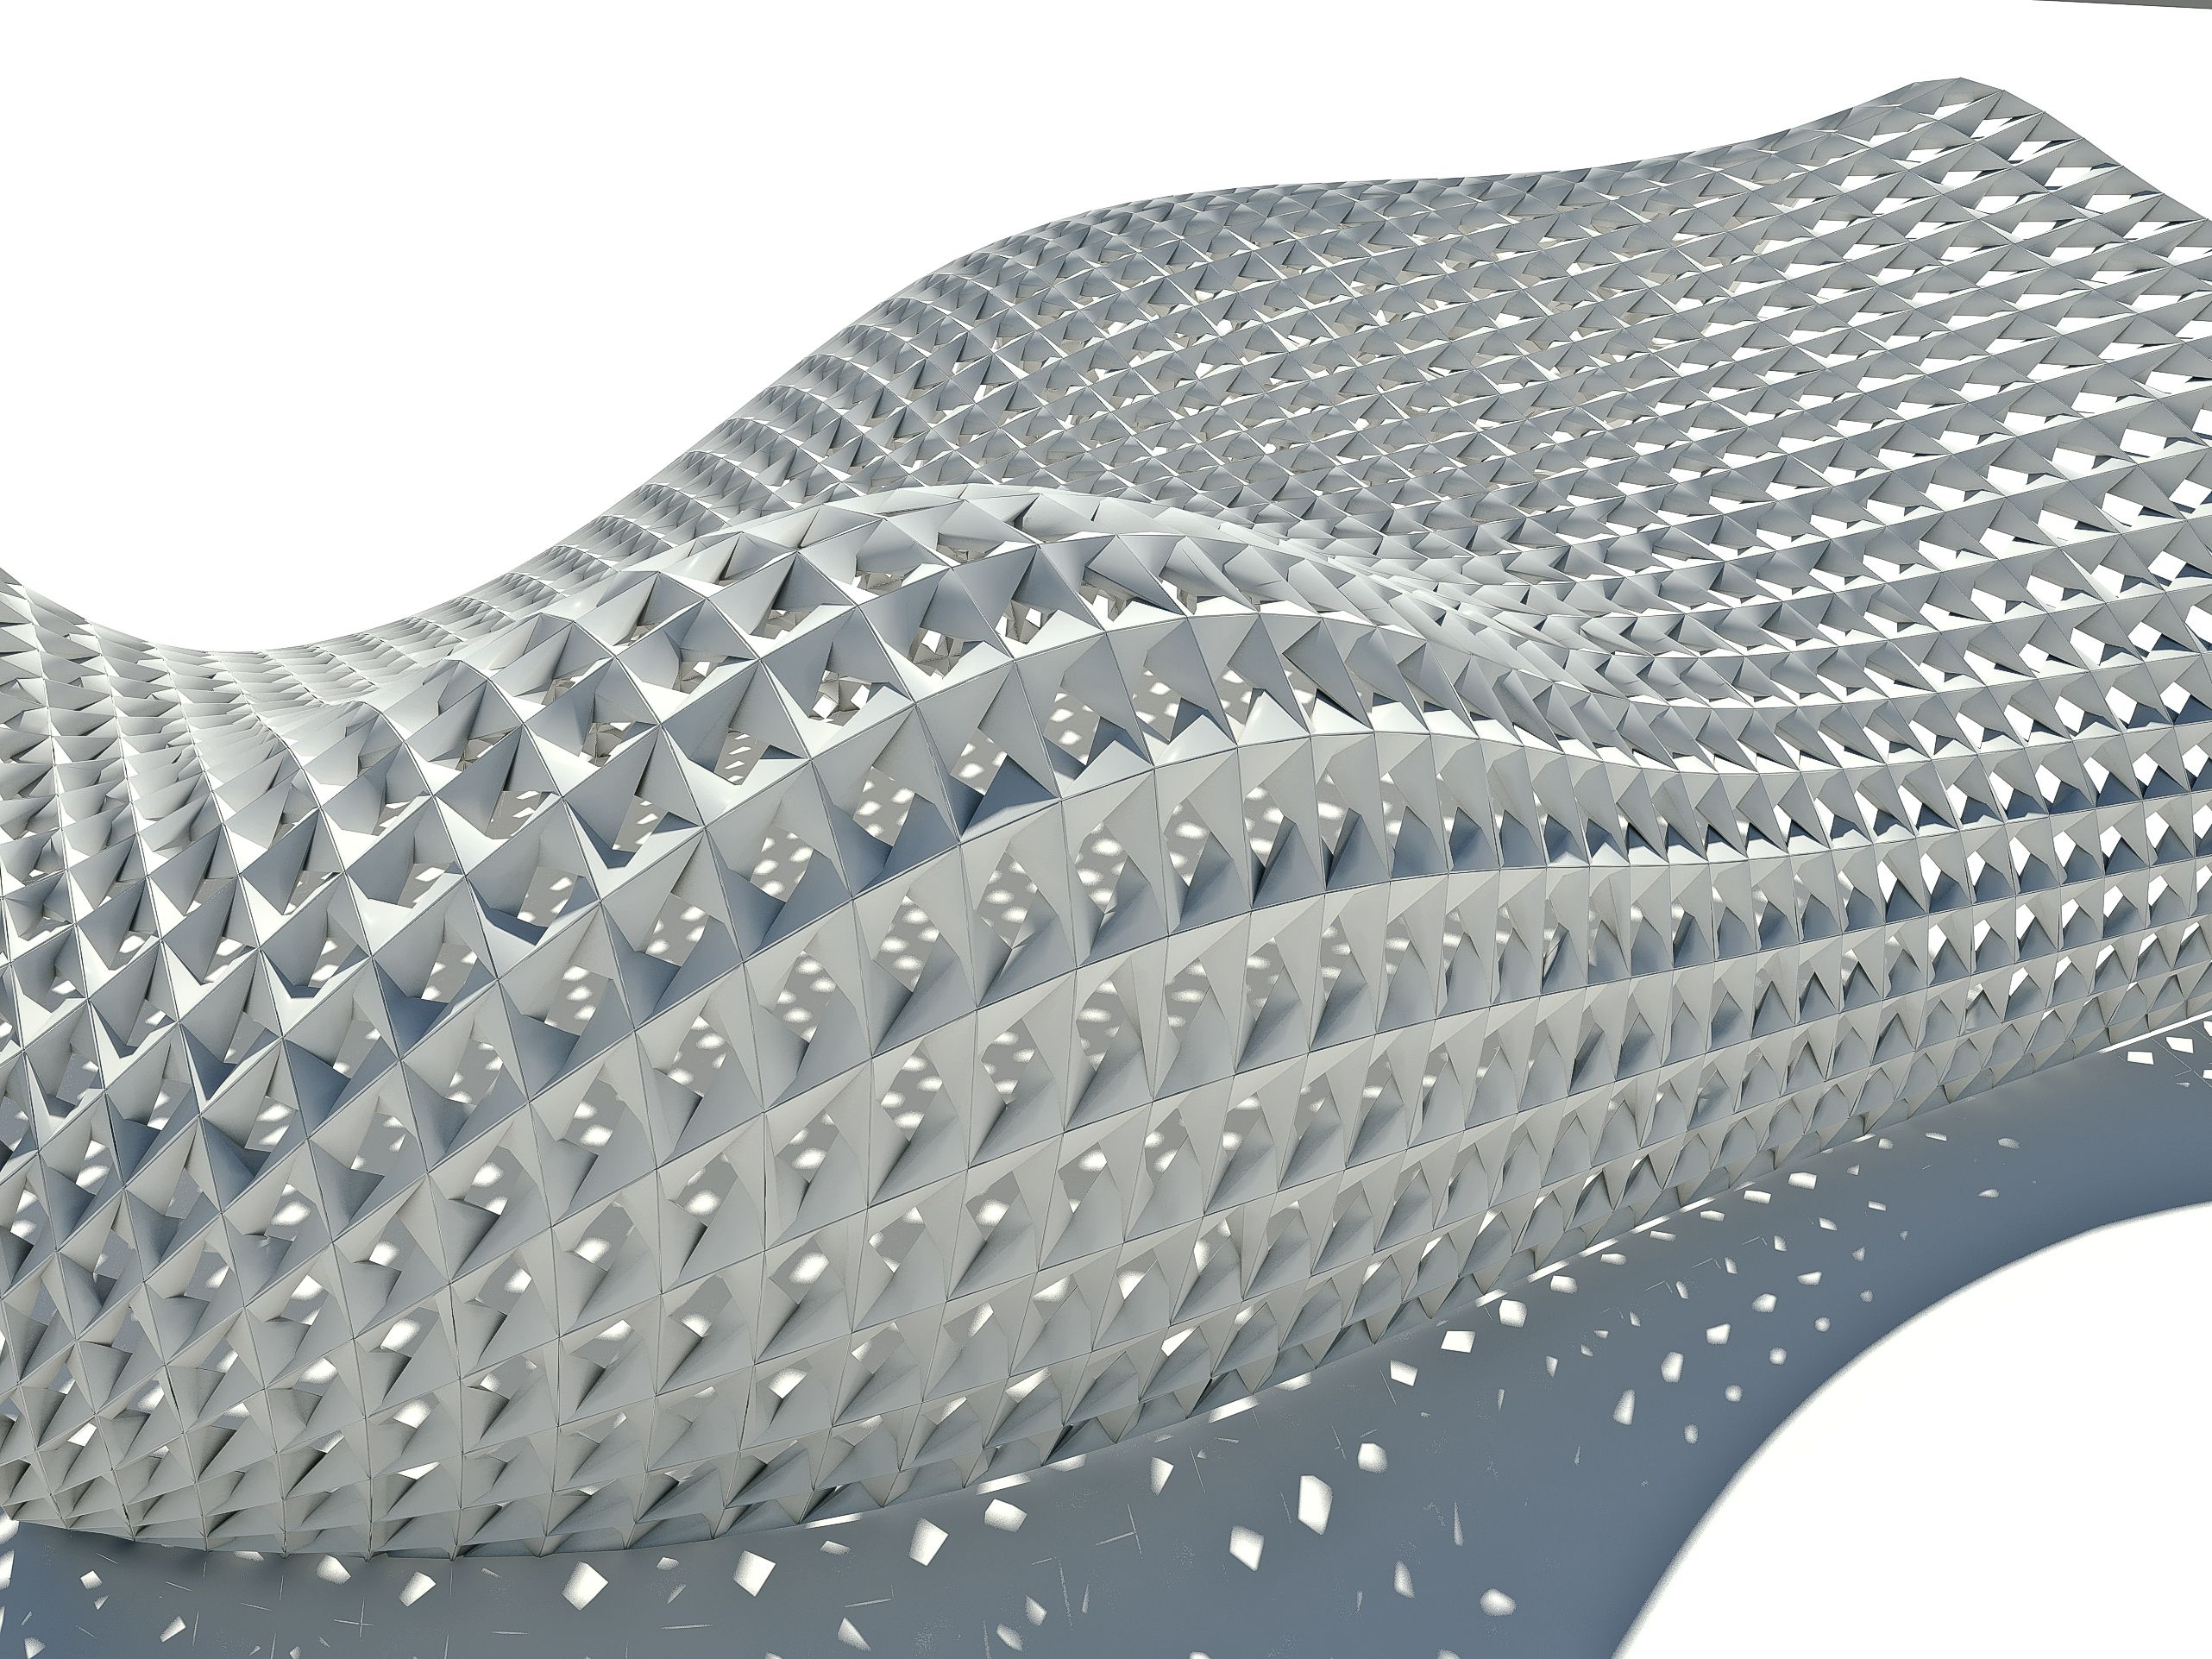 parametric design That's not just any product – it's yours creo parametric has the core modeling strengths you'd expect from the industry leader, along with breakthrough capabilities in additive.